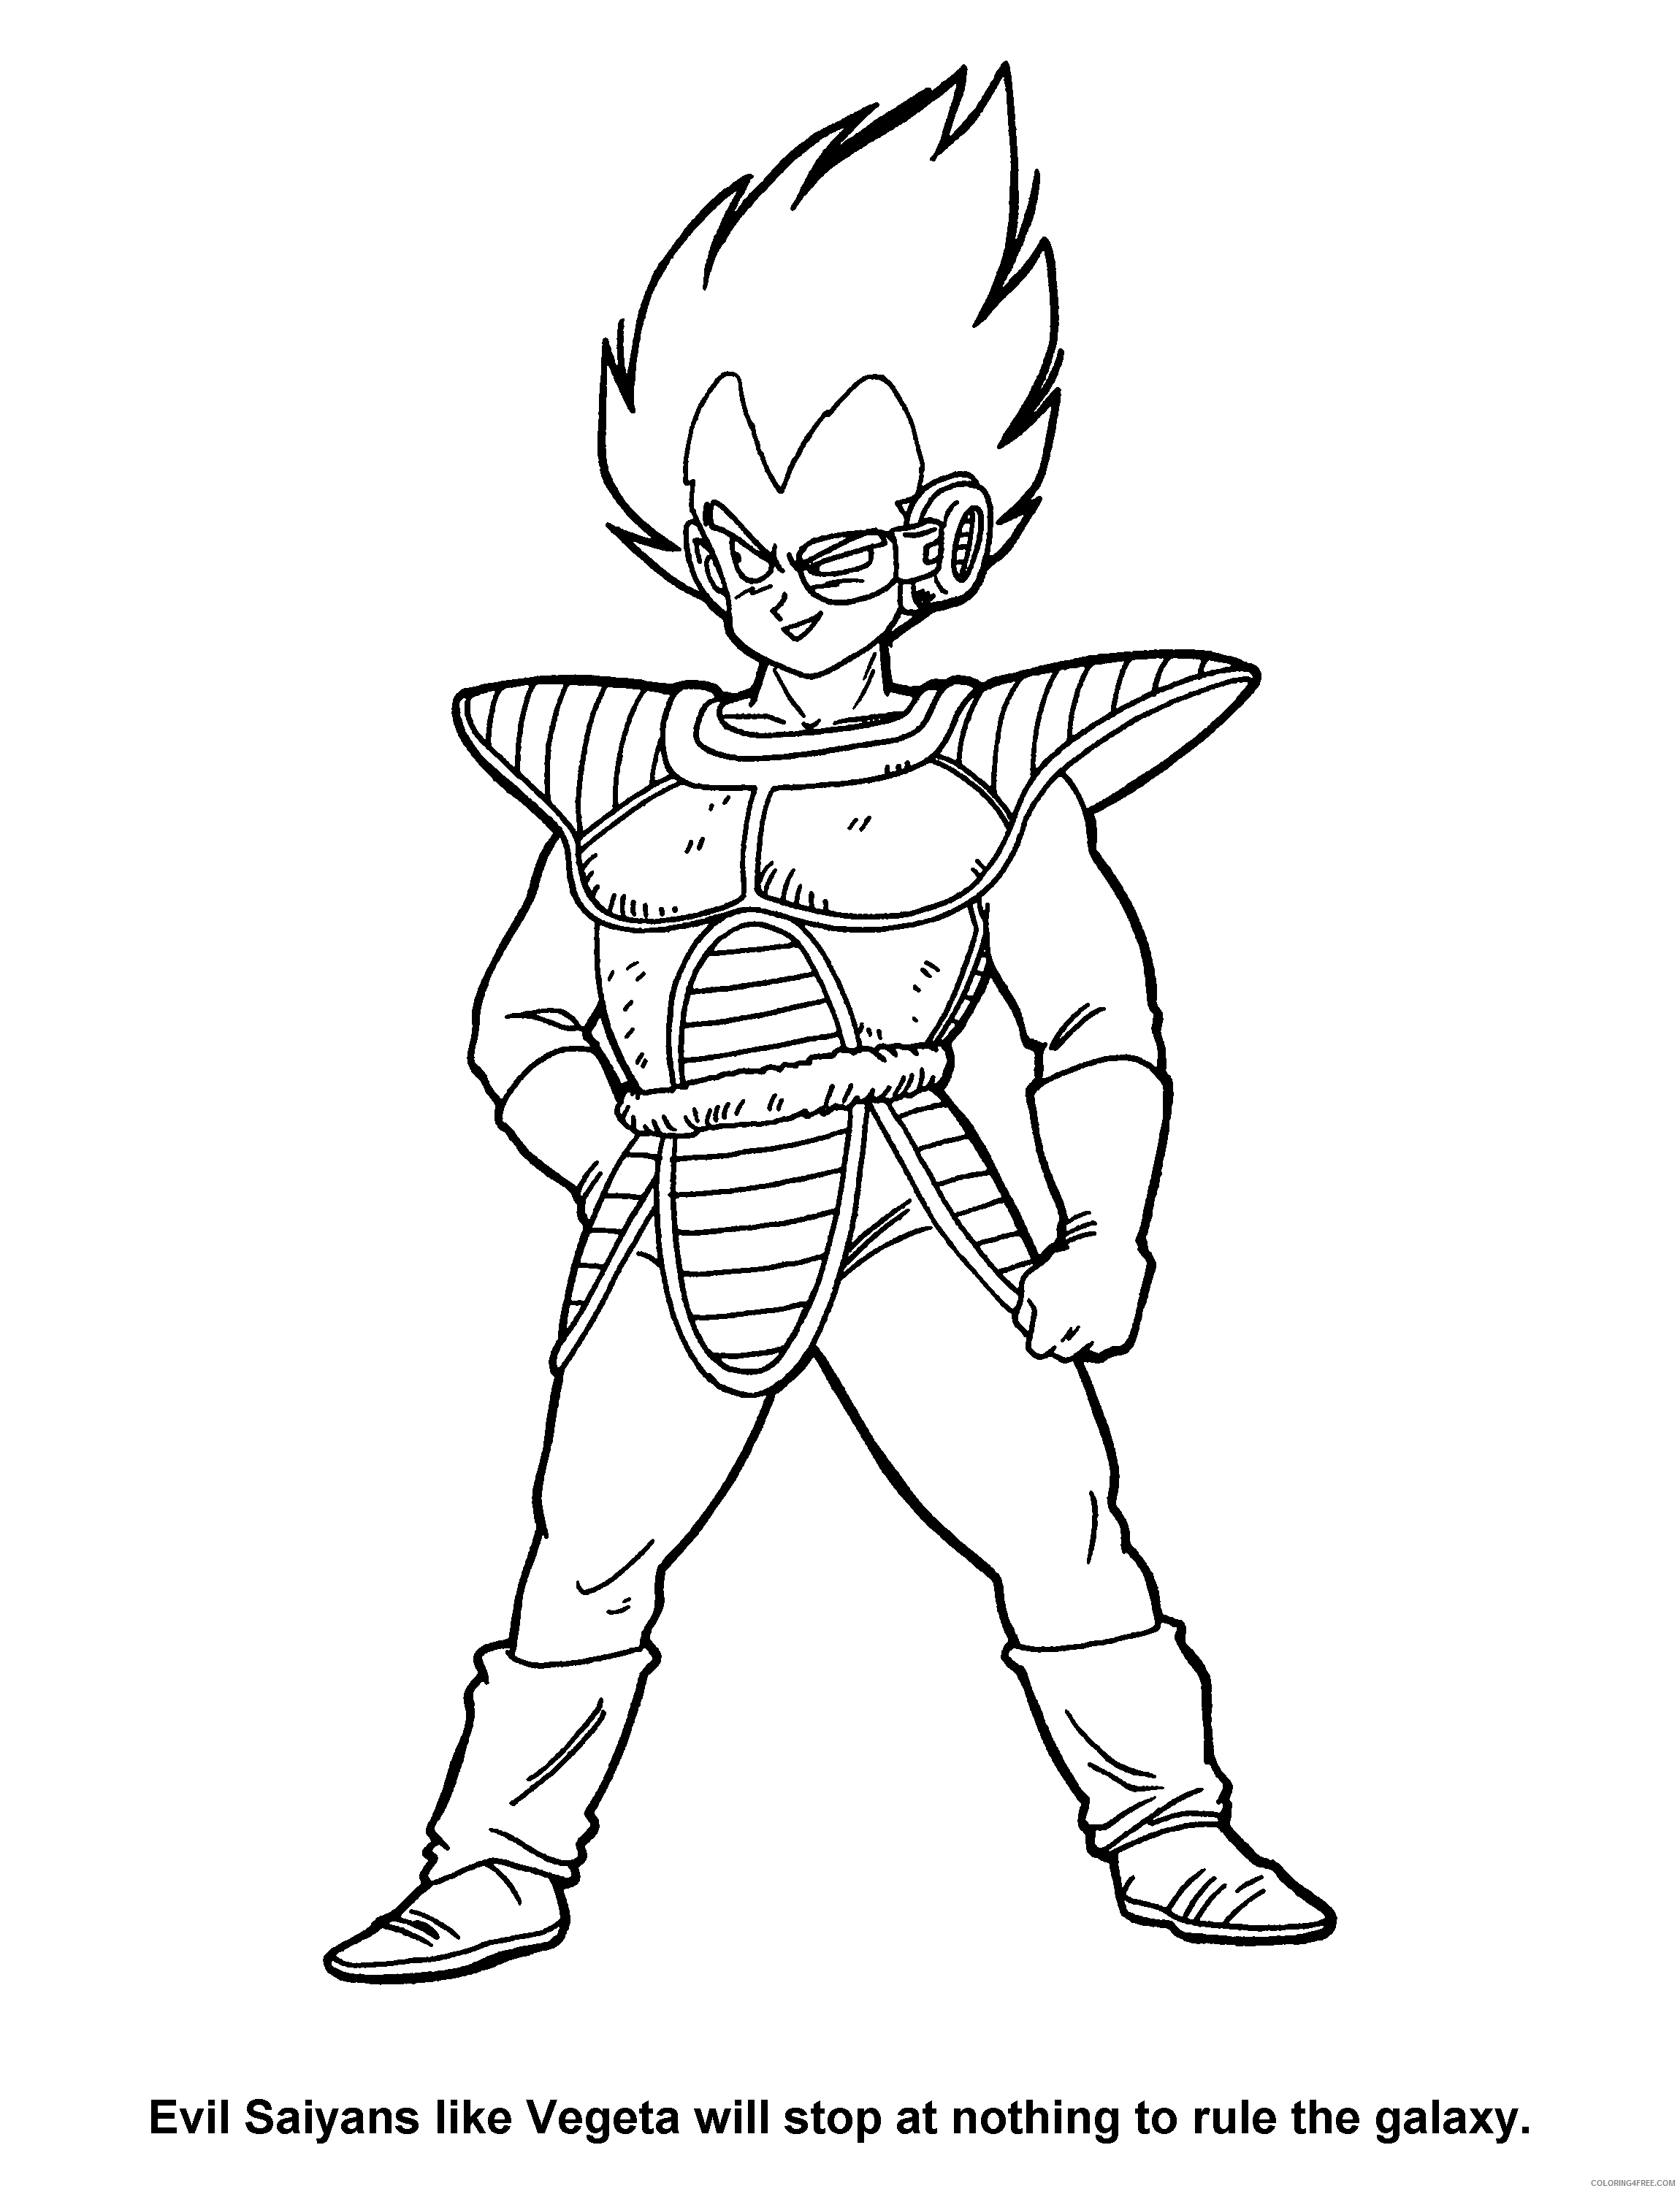 035 evil saiyans like vegeta will stop at nothing to rule the galaxy